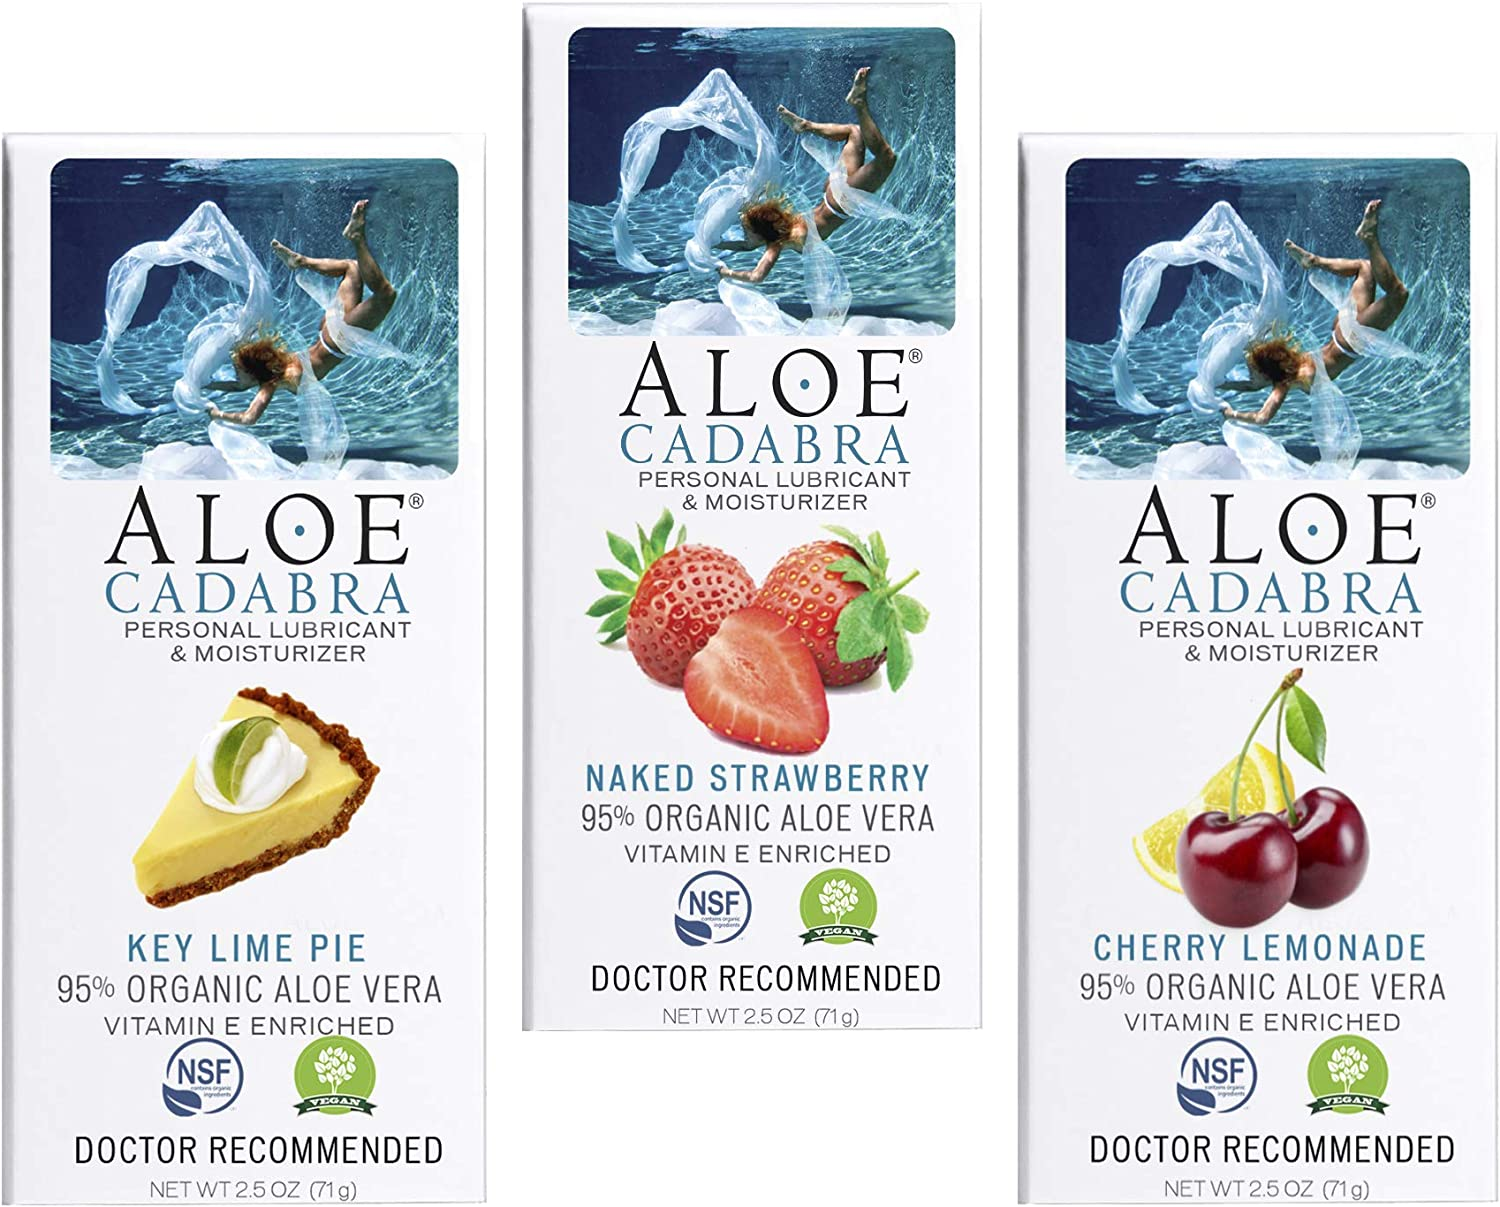 Aloe 70% OFF Outlet Cadabra Natural Philadelphia Mall Lubricant Organic B Flavored Water Assorted